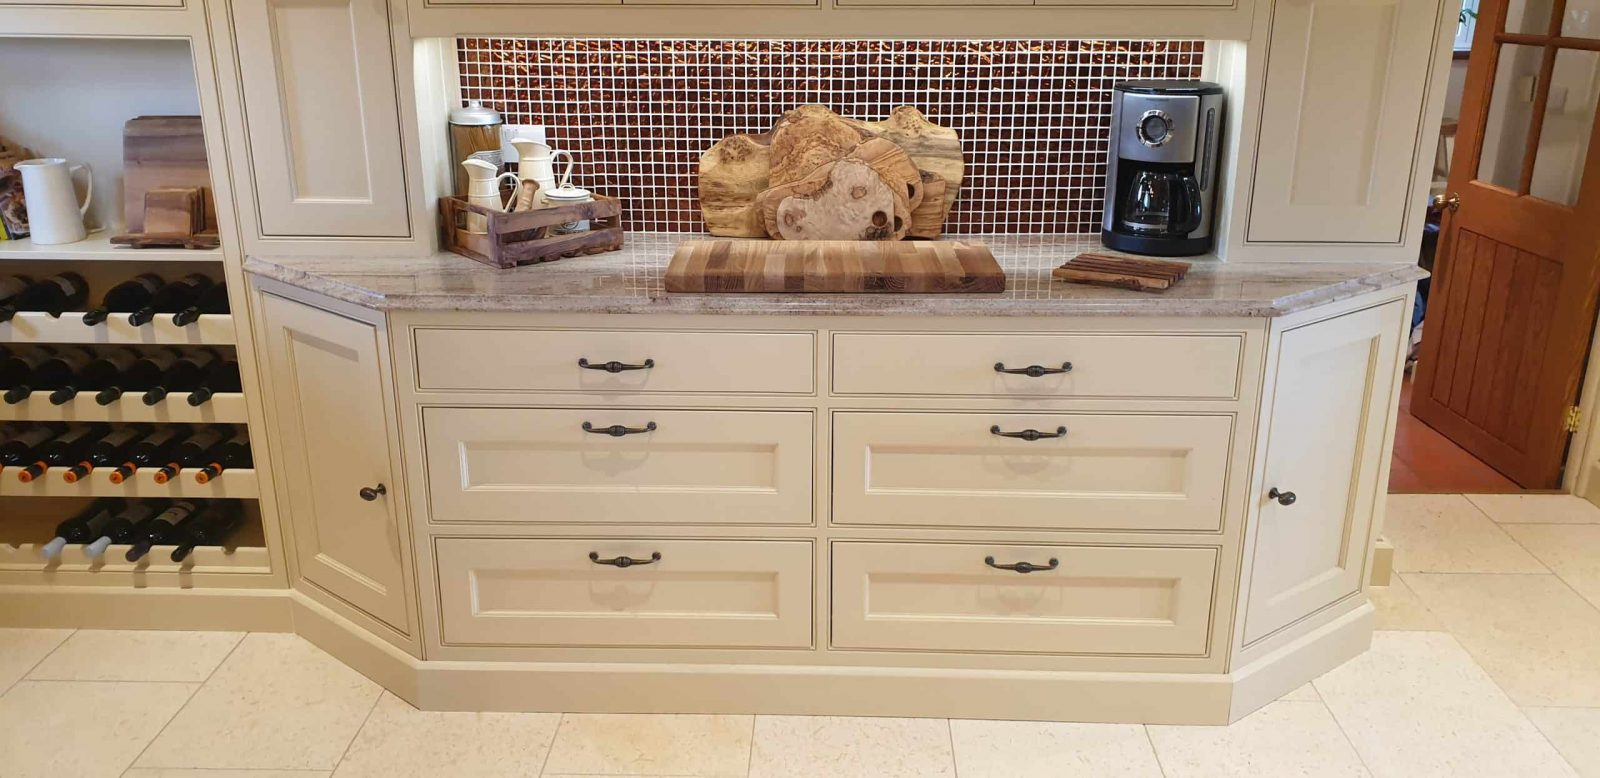 A detailed photo of a handmade inframe shaker kitchen dresser with wine storage